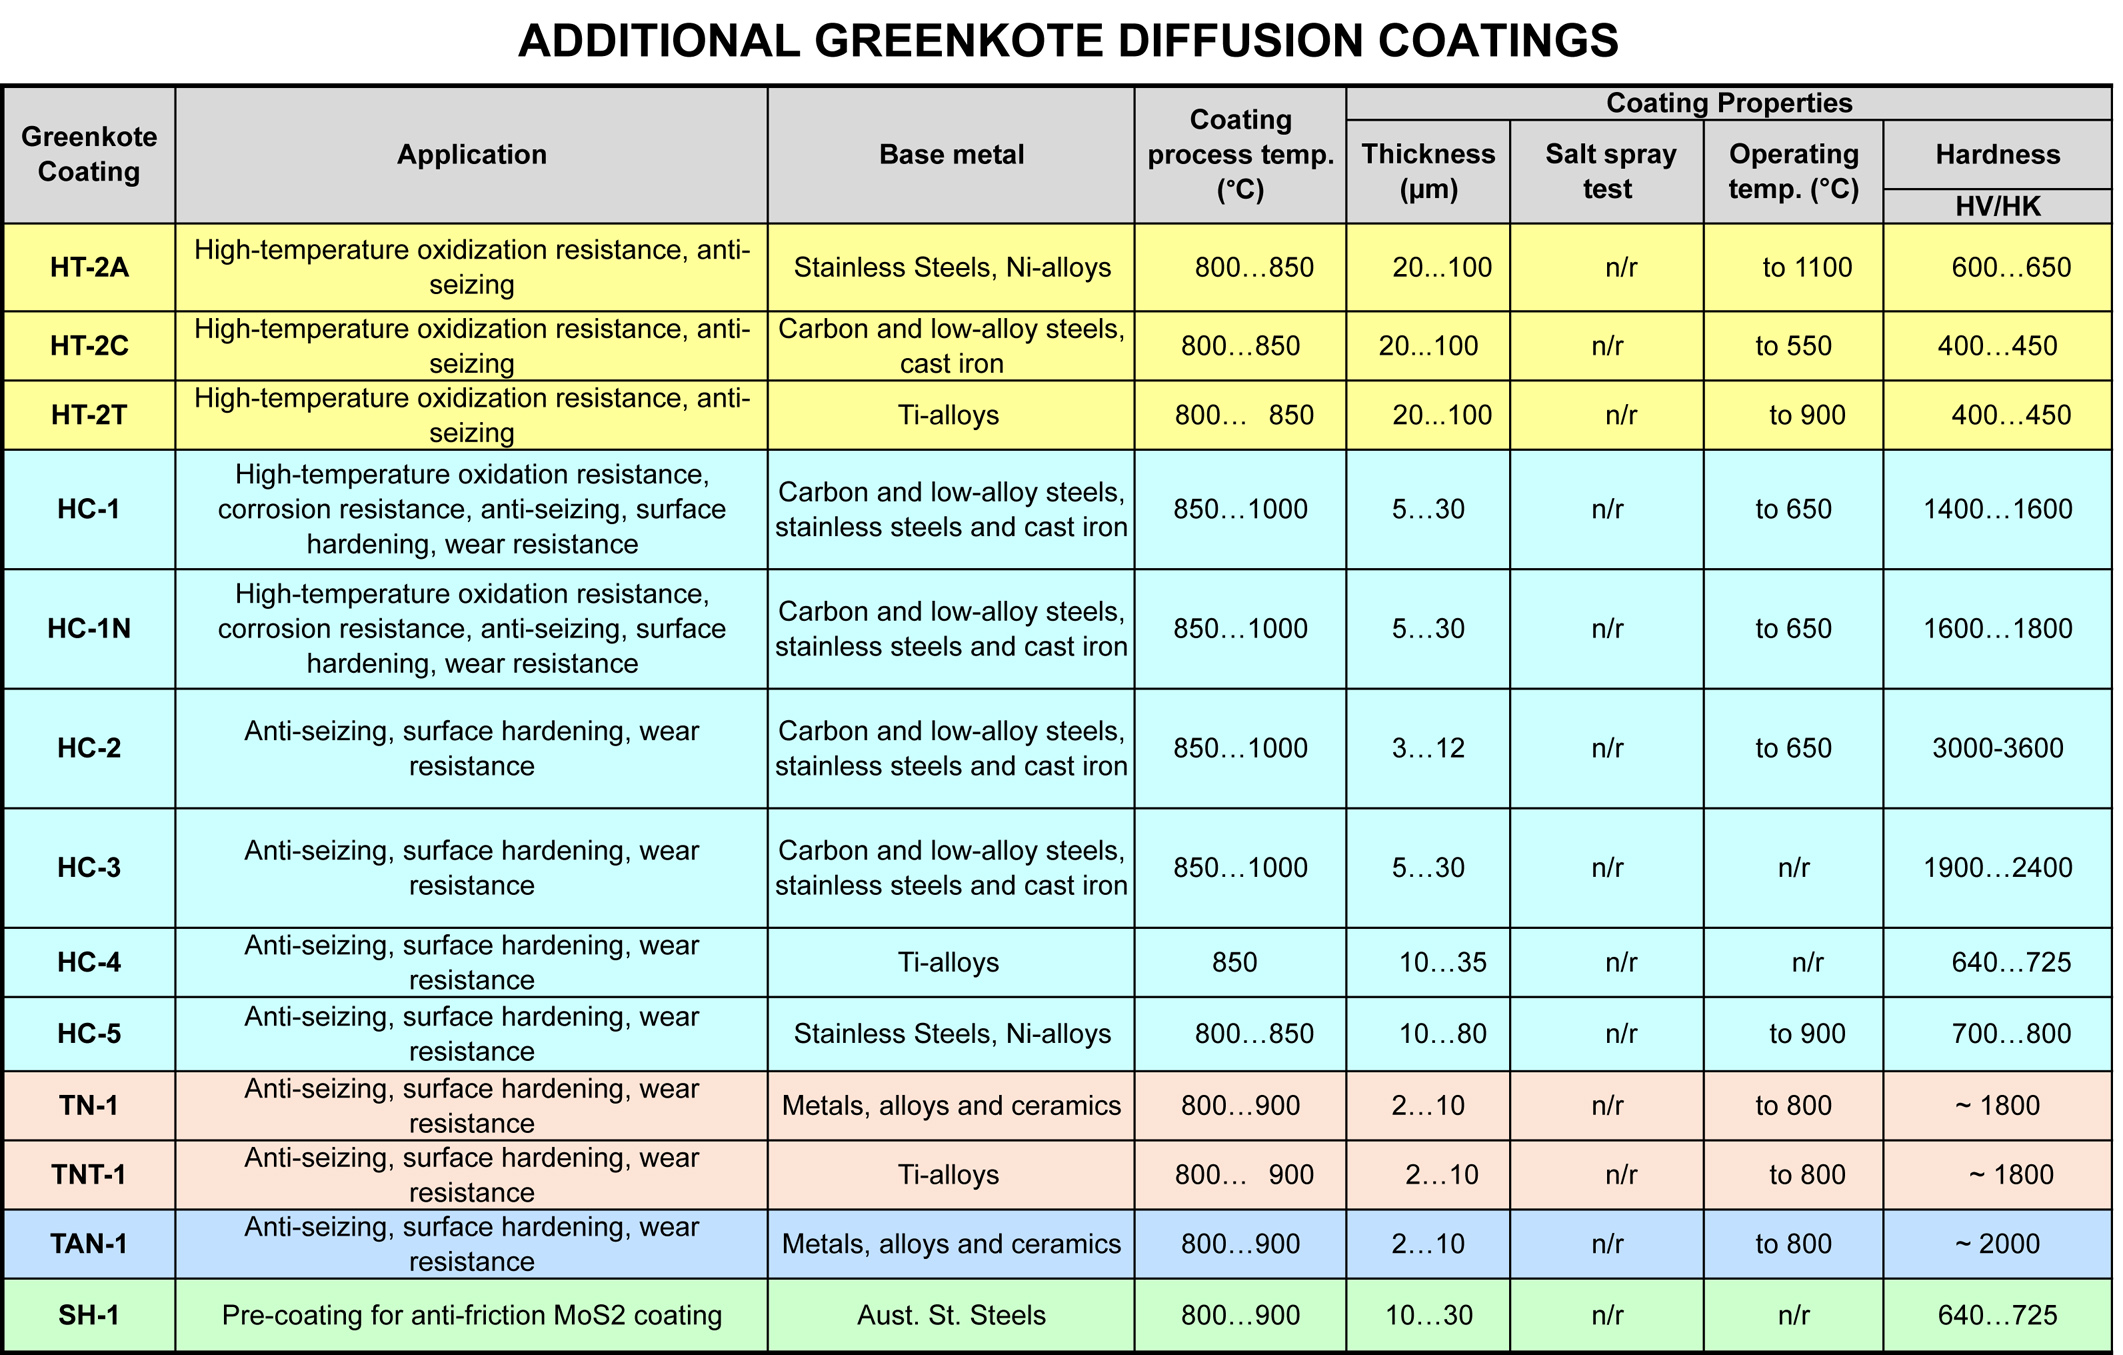 Additional Greenkote coatings